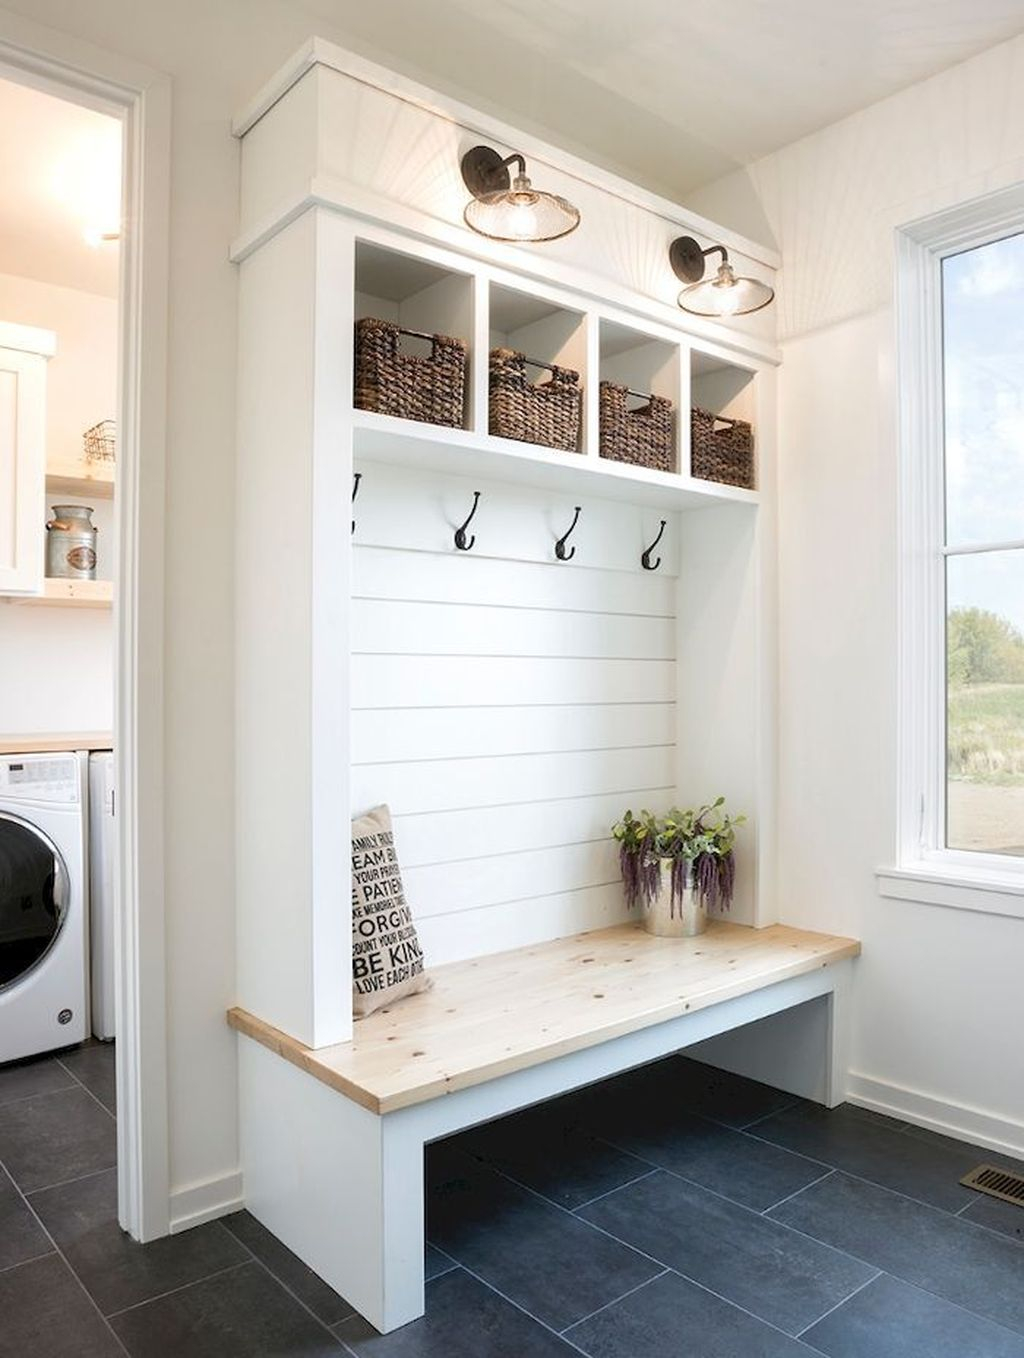 Delightful Mudroom Storage Design Ideas To Have Soon36